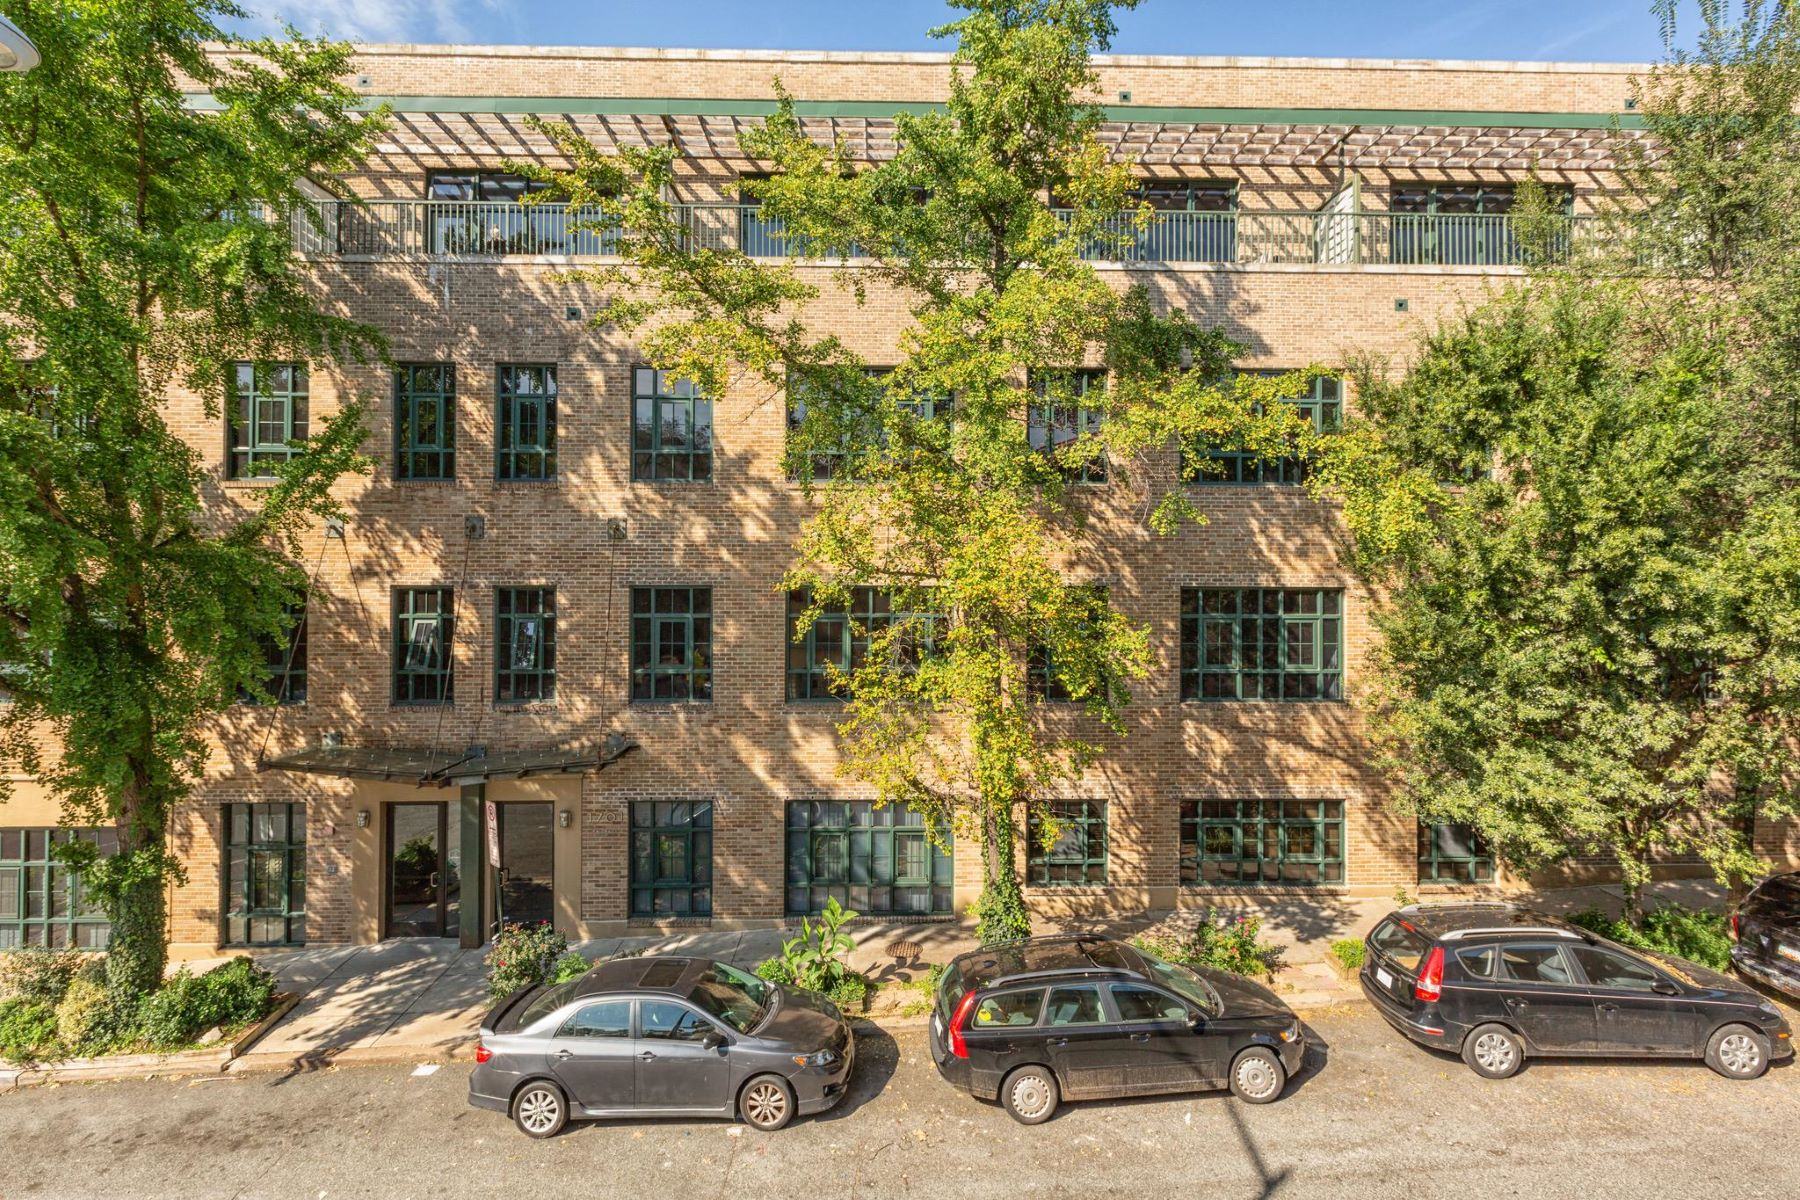 Additional photo for property listing at 1701 Kalorama Rd NW #407 1701 Kalorama Rd NW #407 Washington, District Of Columbia 20009 United States